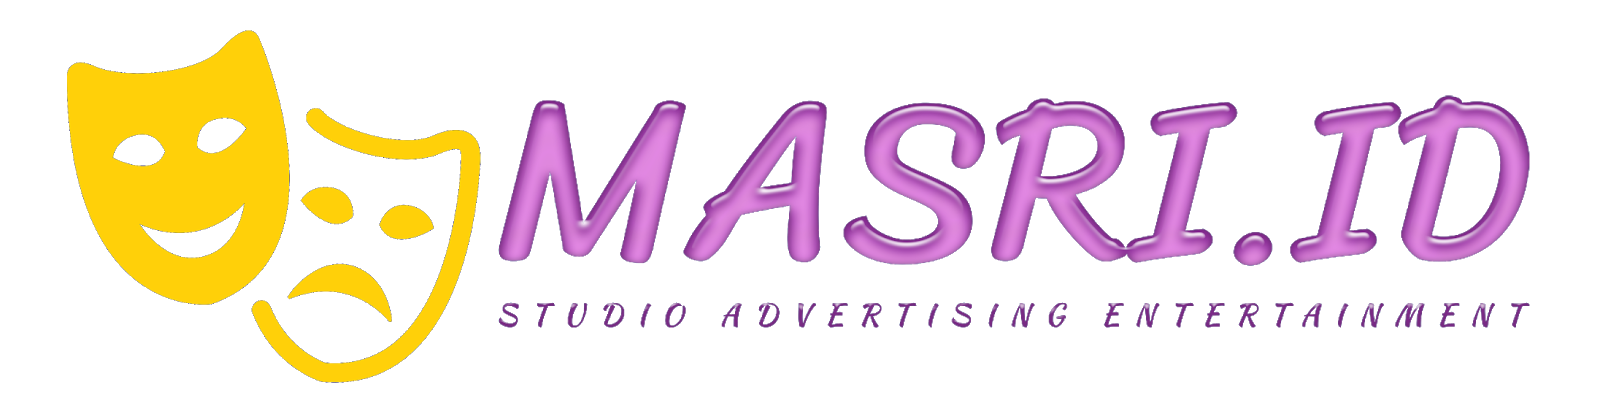 My Studio, Advertising, Entertainment